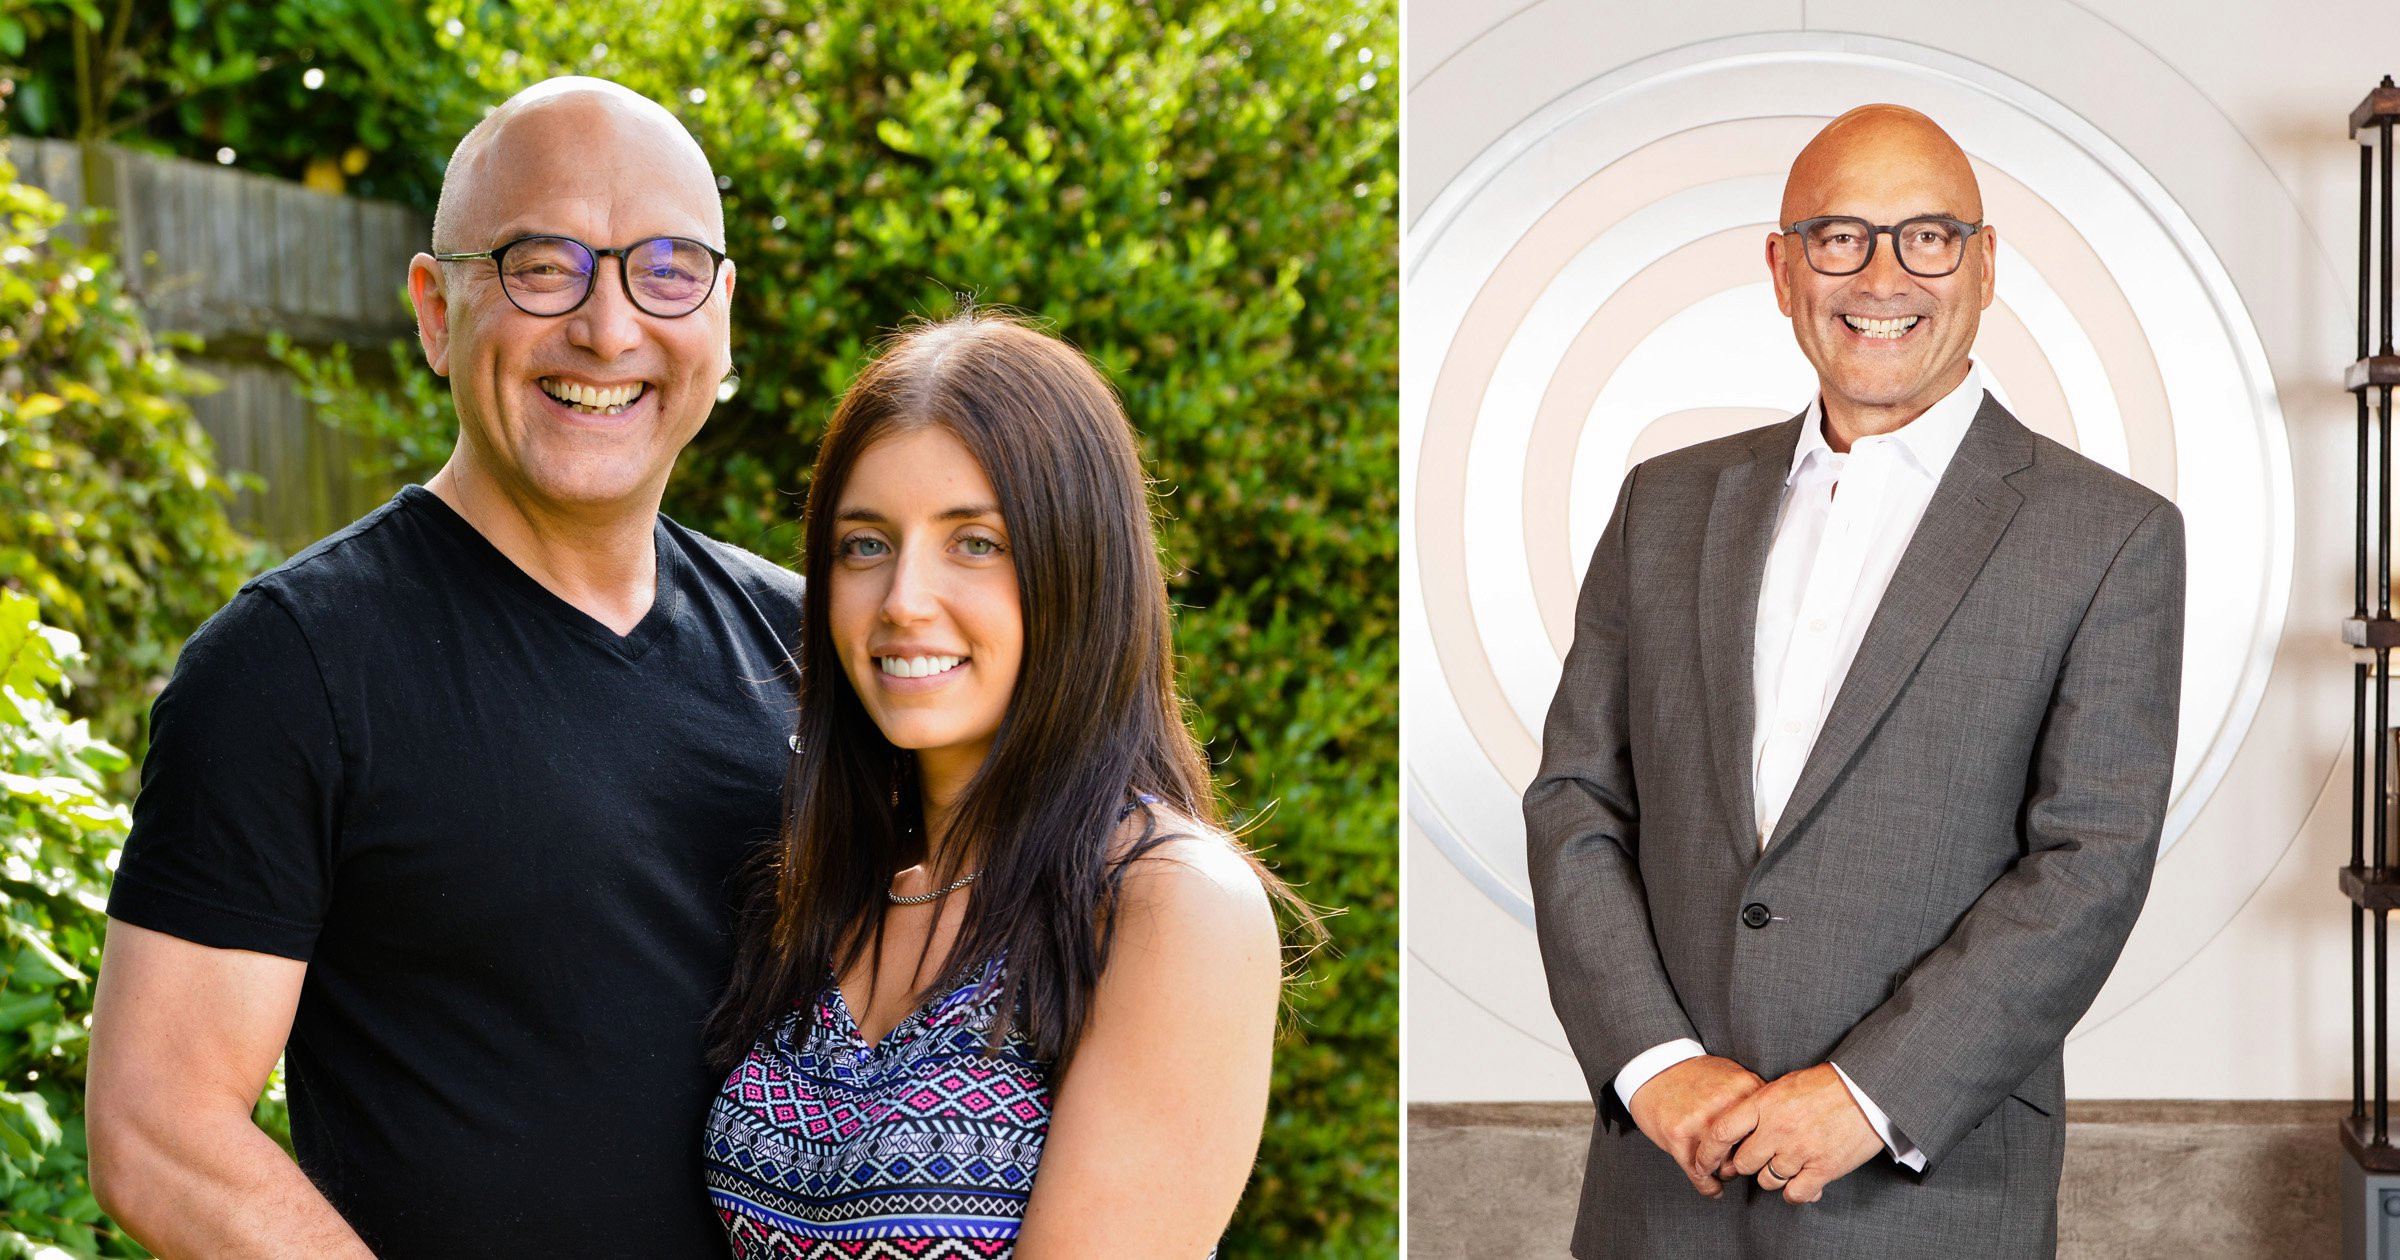 MasterChef 2021: Who is Gregg Wallace's wife and do they have children?